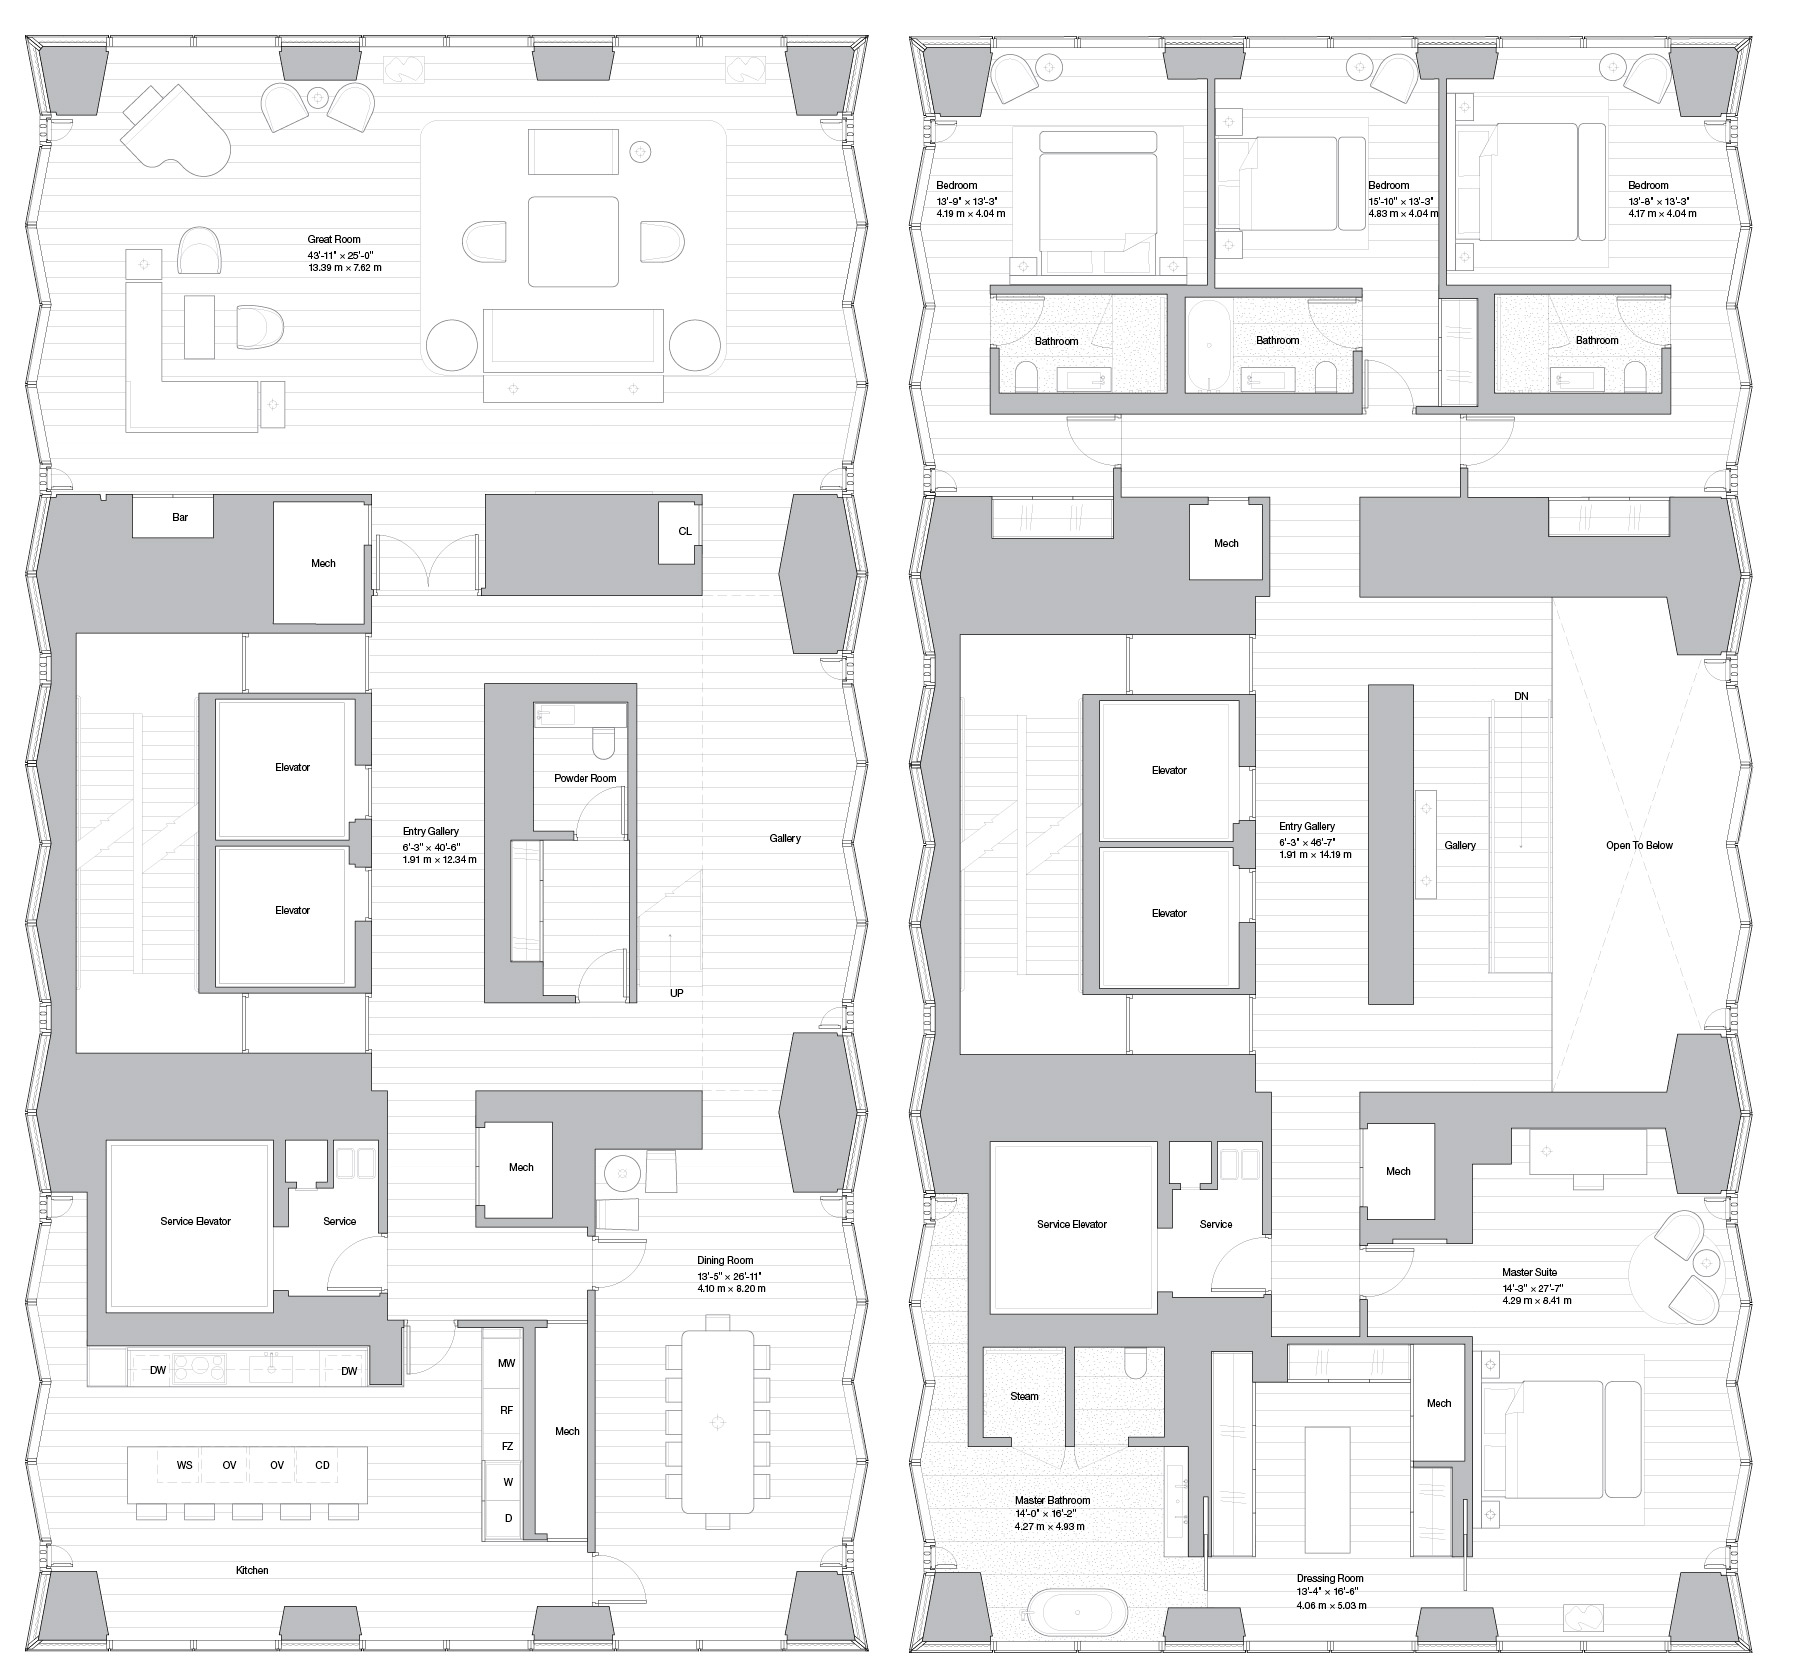 Floorplan porn curbed ny for Floor 6 reloaded menu